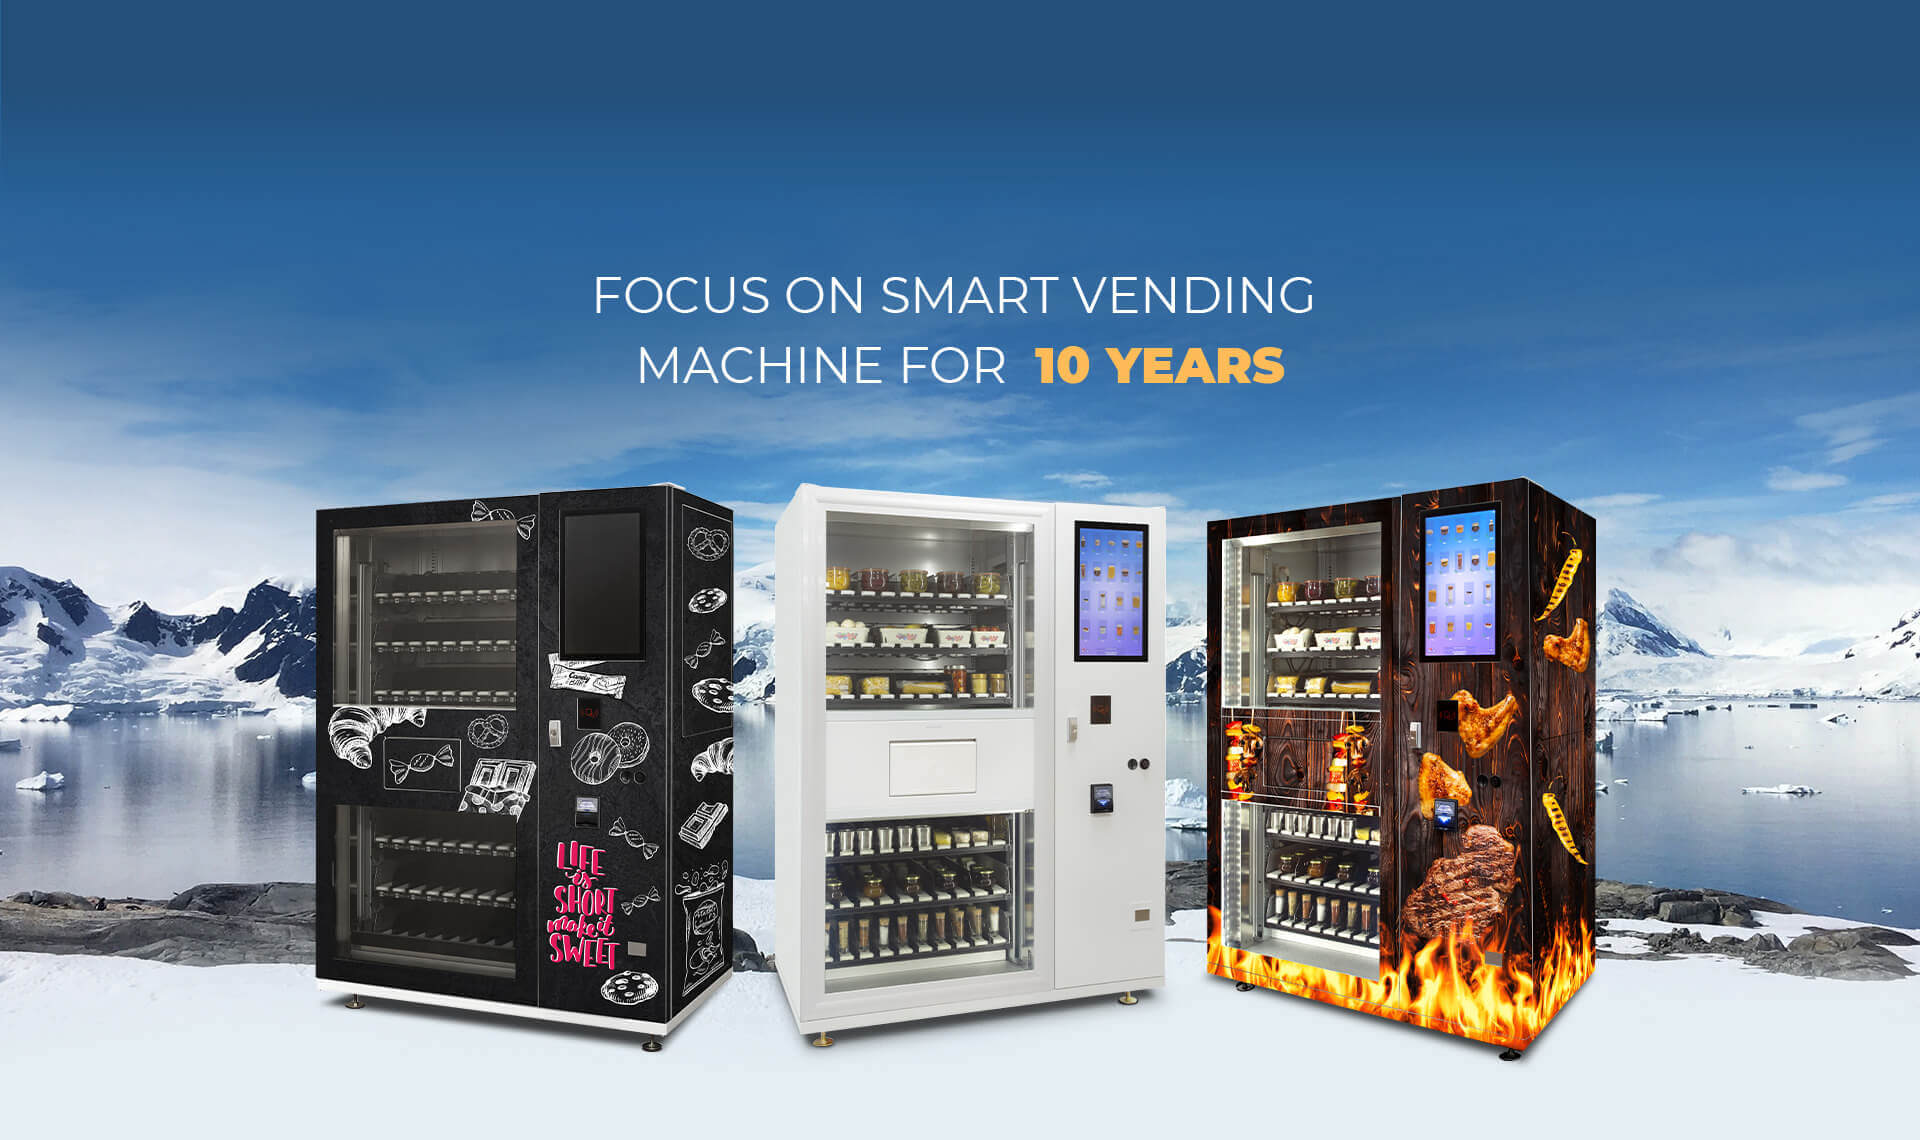 Focus on Smart Vending Machine for 10 Years